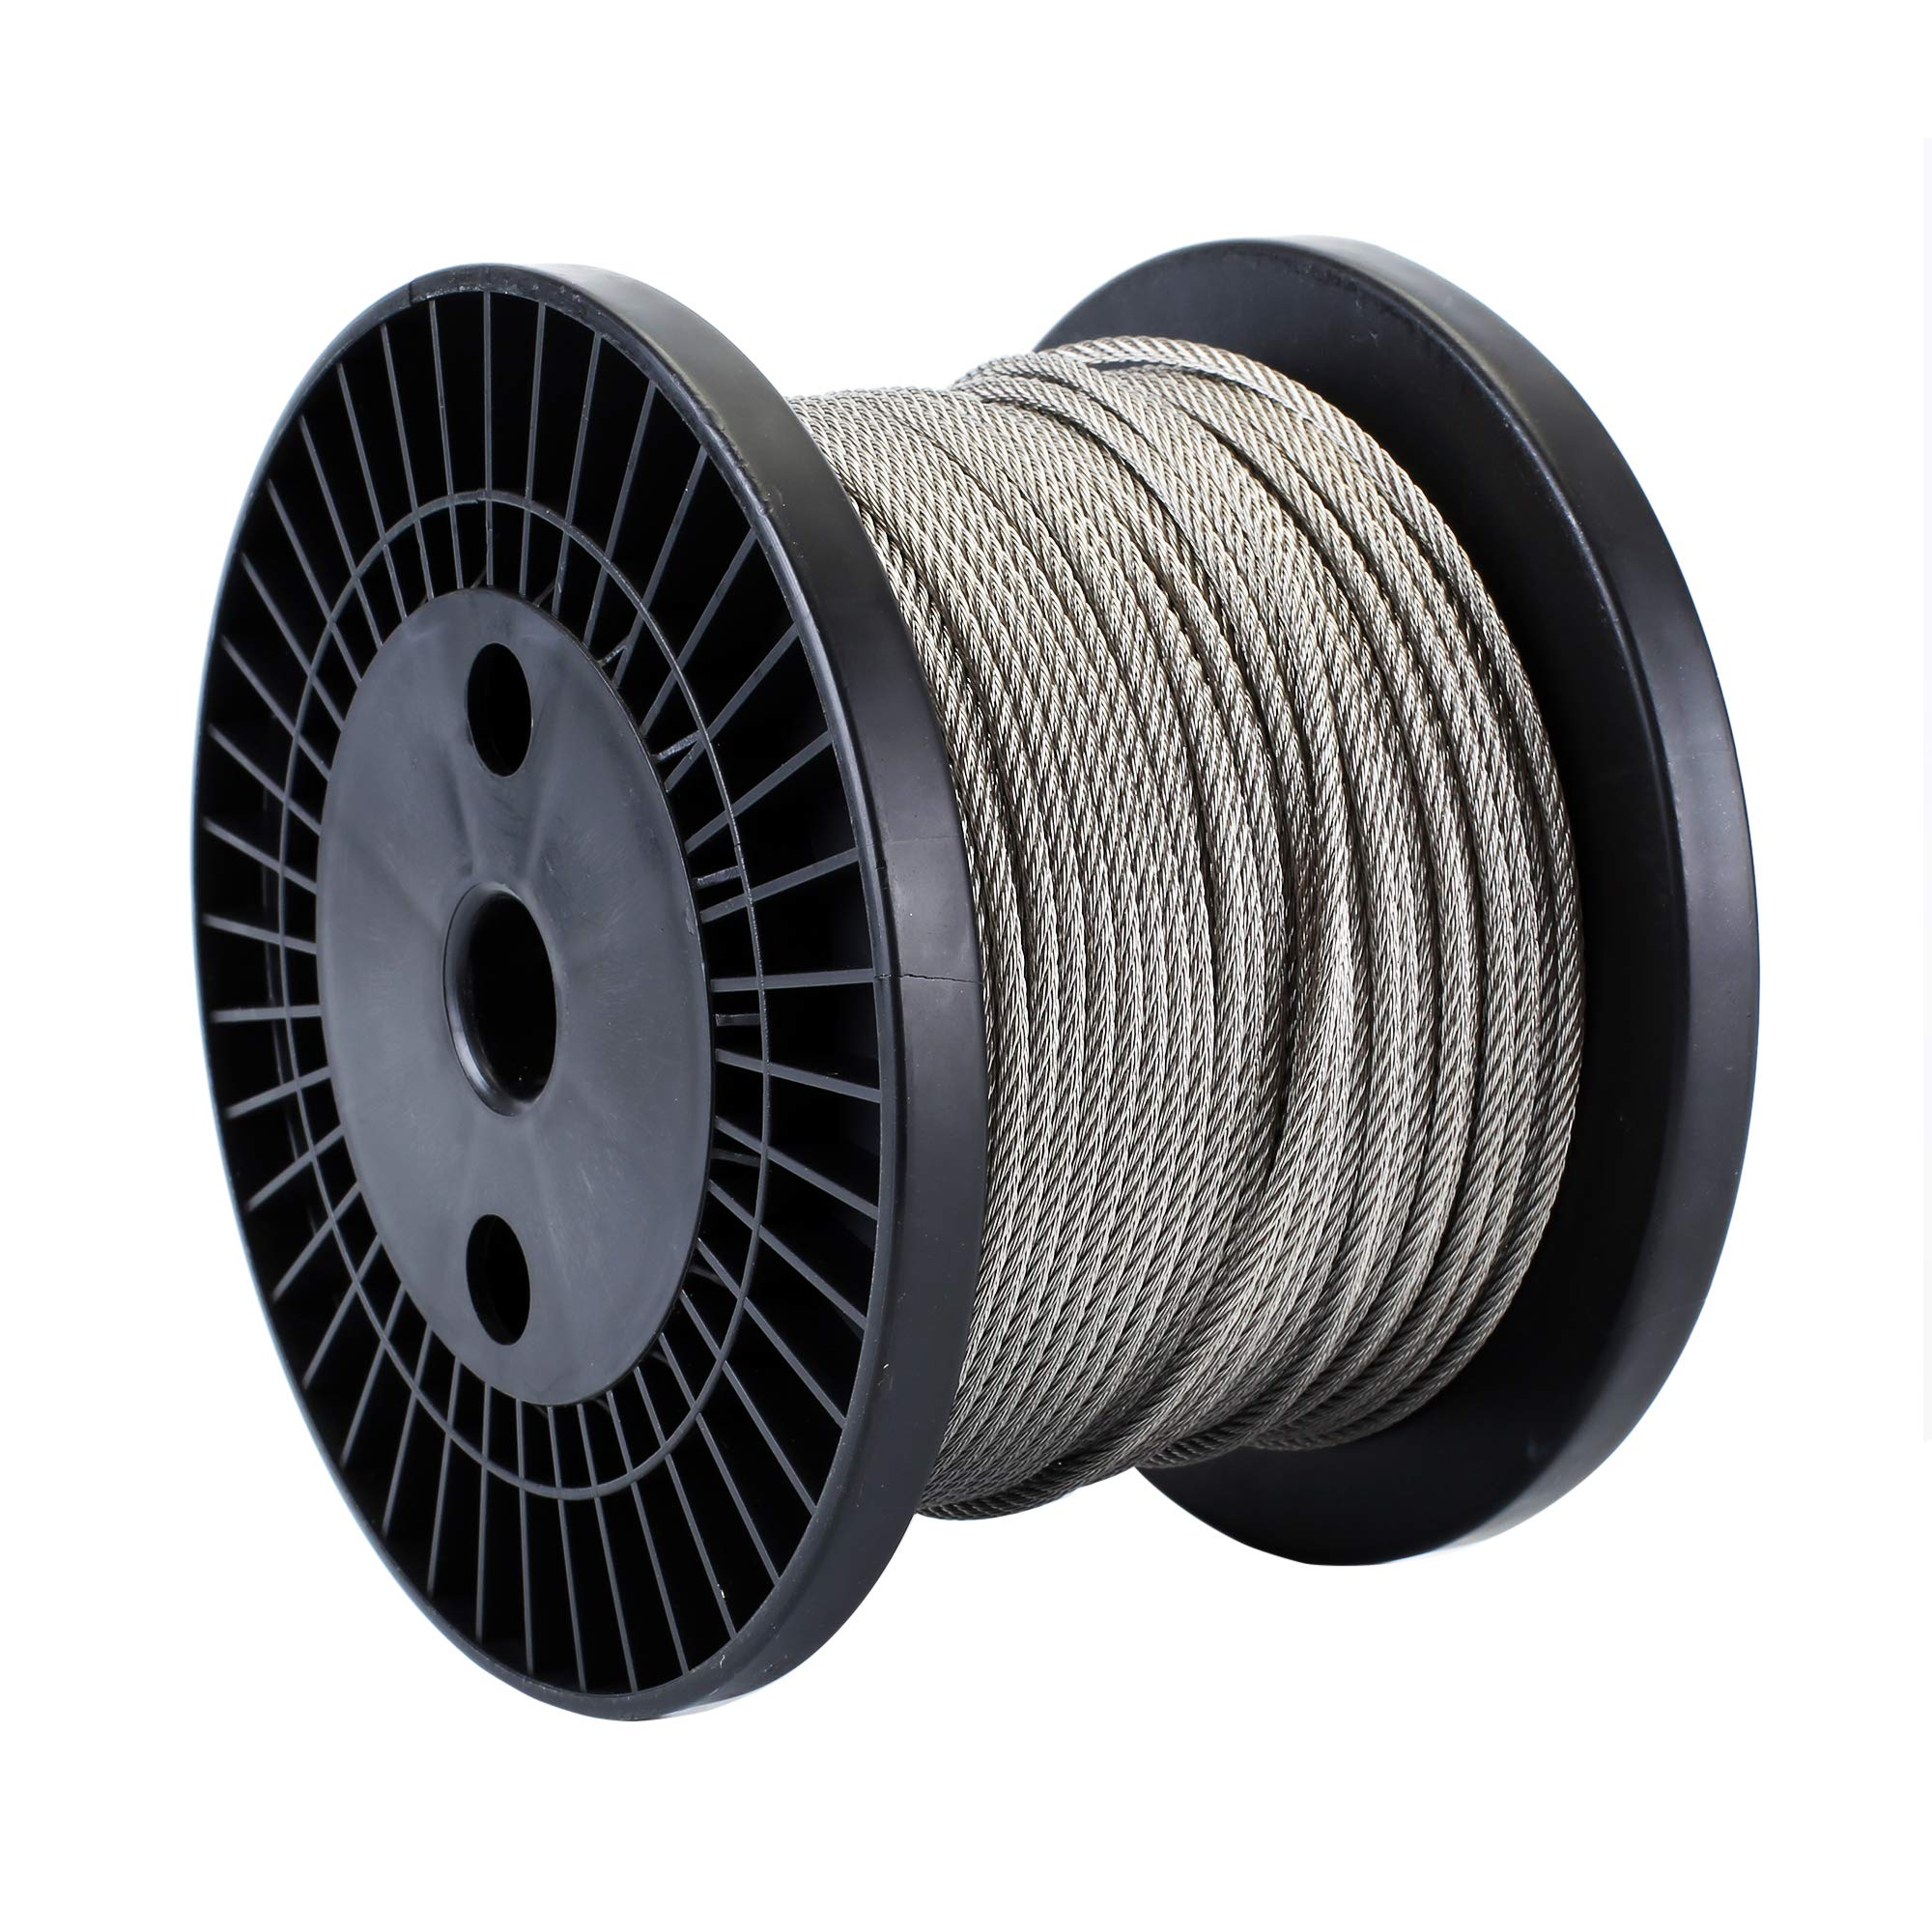 Zoostliss 200Ft Stainless Steel Aircraft Wire Rope 1/8'' for Deck Cable Railing Kit, 7x7 T316 Marin Grade by Zoostliss (Image #1)